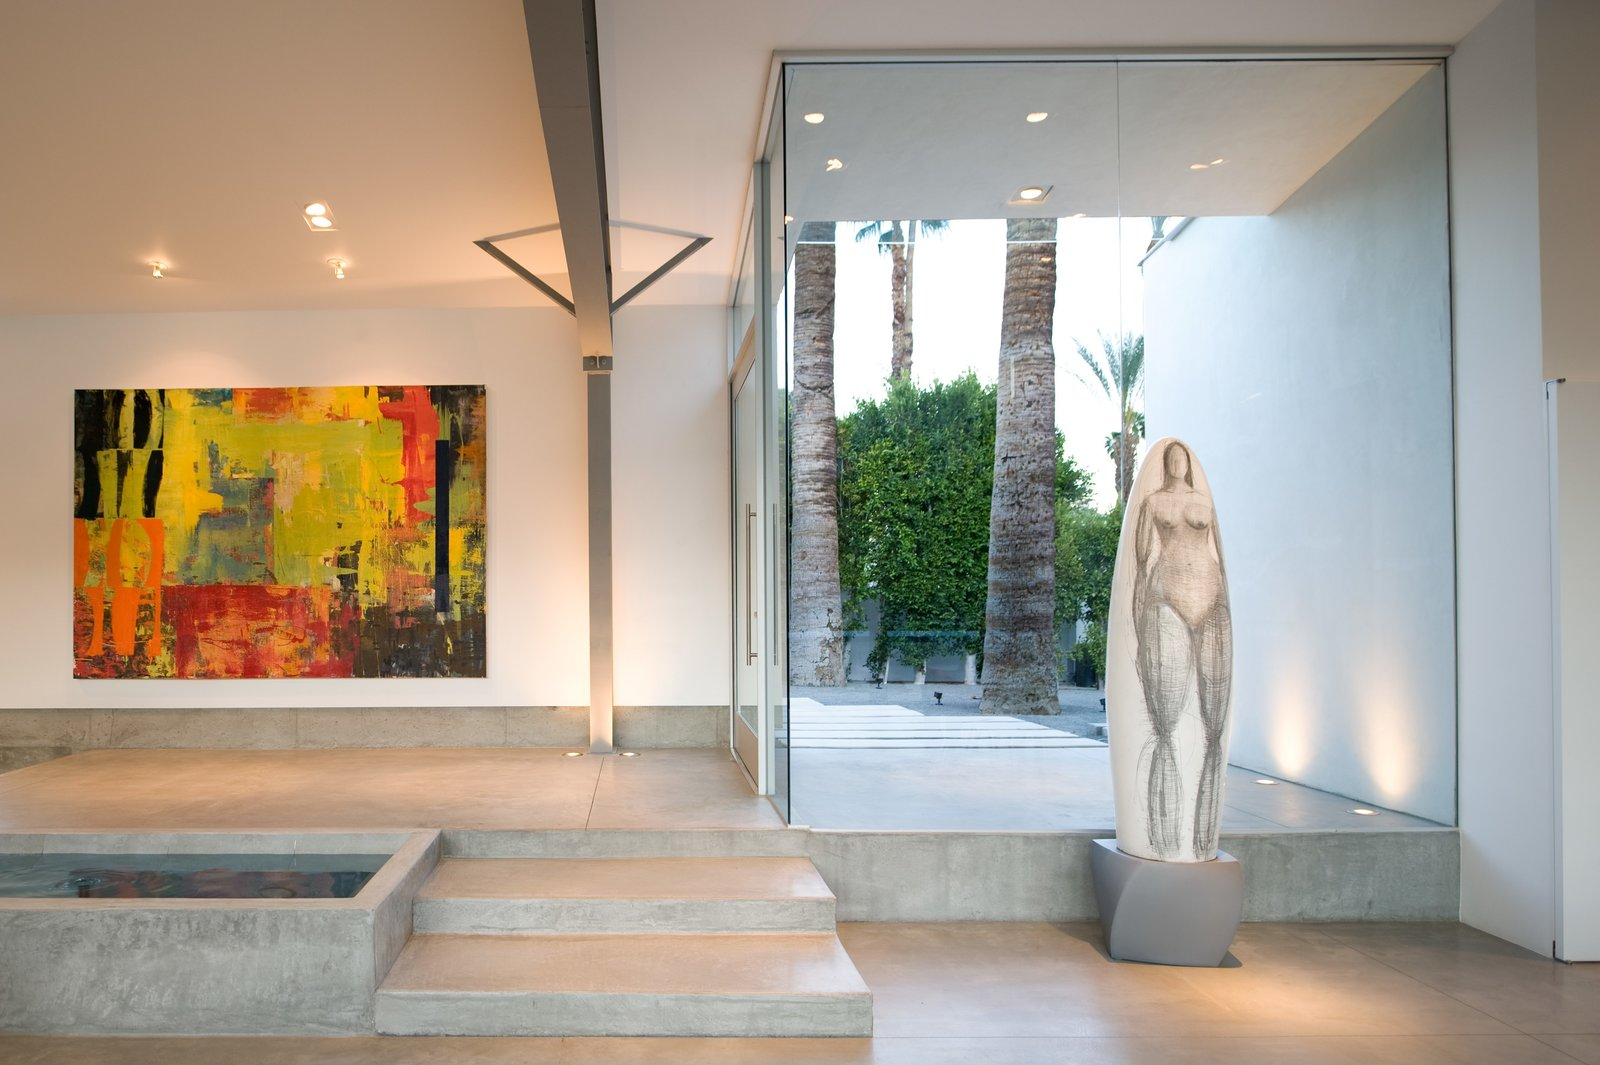 Living Room, Ceiling Lighting, Floor Lighting, and Concrete Floor The front entrance opens into the great room next to a linear pond. The home becomes a perfect showcase for the owner's artwork collection.   Desert Canopy House